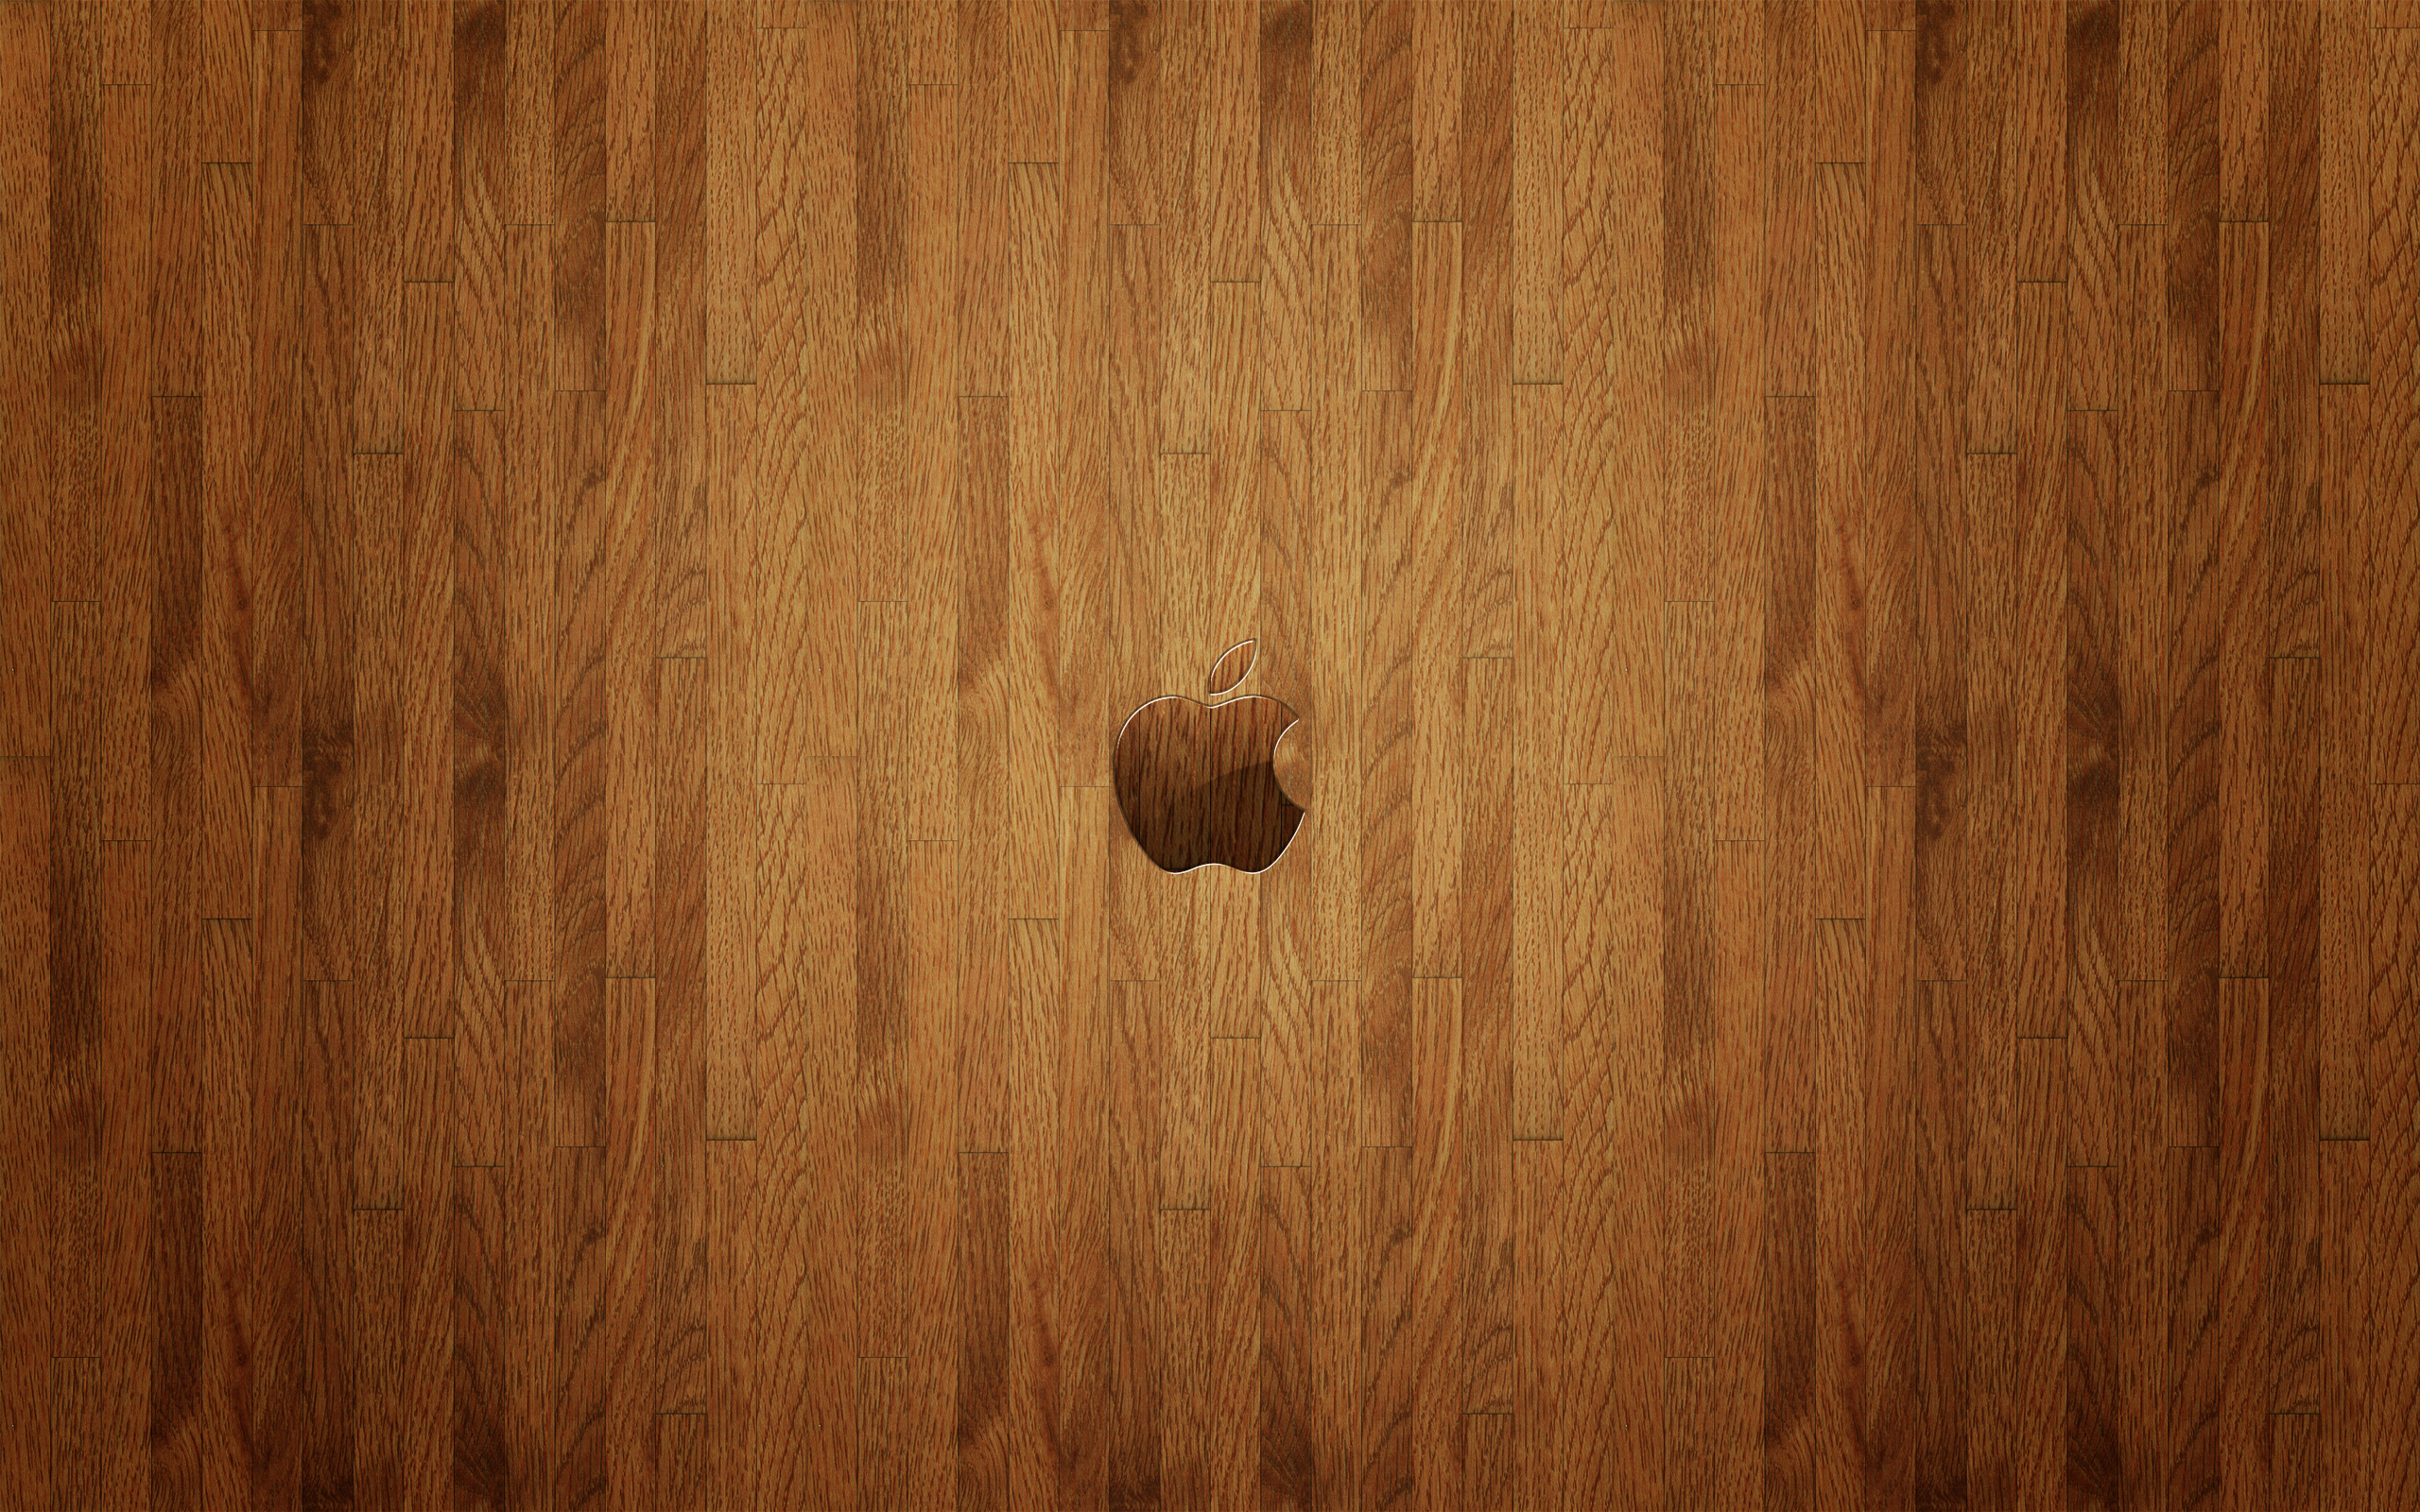 Mac wallpaper set 5 mac wood megapack 2 awesome wallpapers for Wood wallpaper for walls